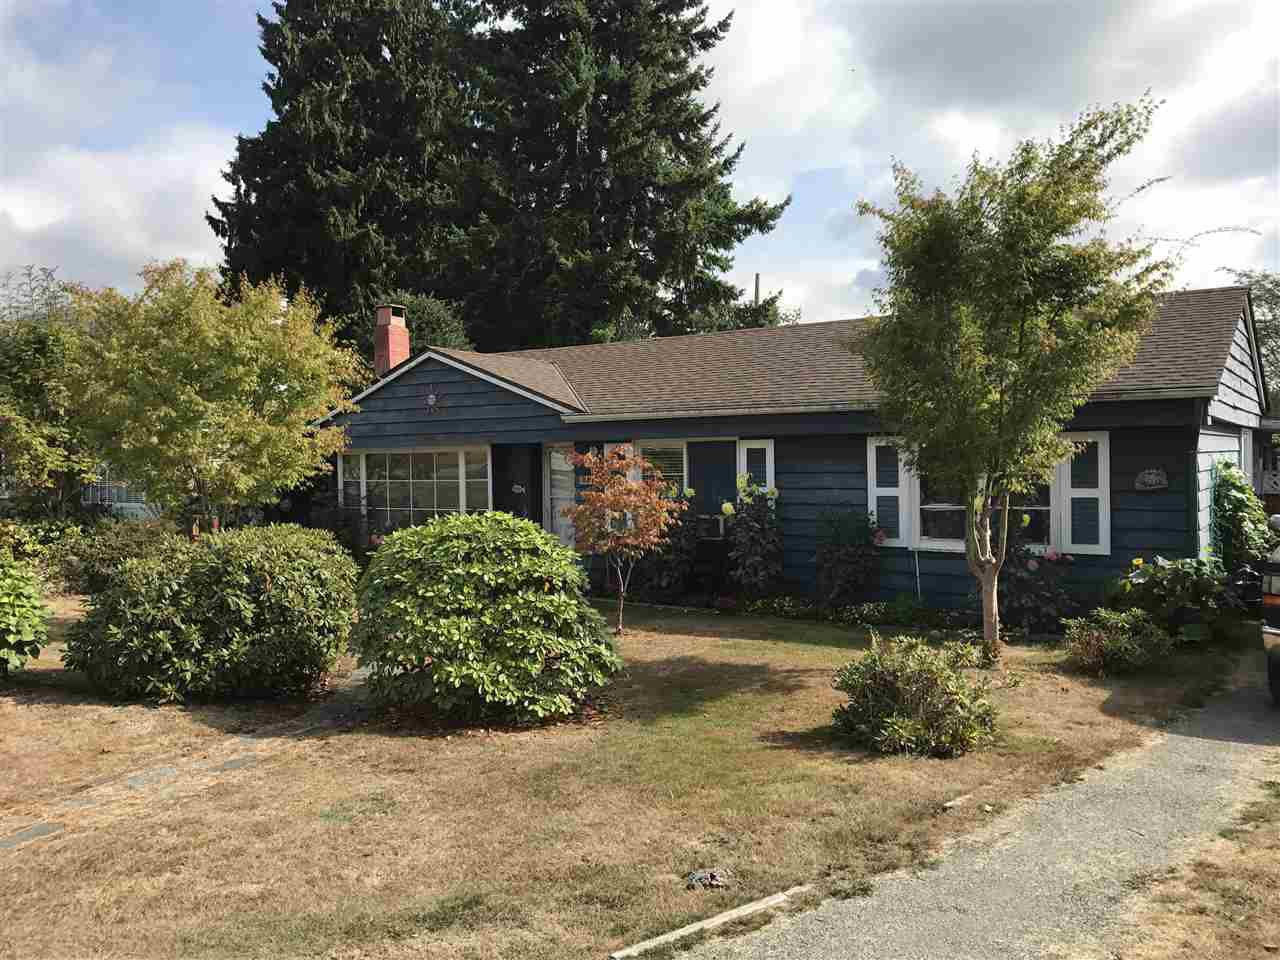 """Main Photo: 1378 WHITEWOOD Place in North Vancouver: Norgate House for sale in """"Norgate"""" : MLS®# R2222936"""